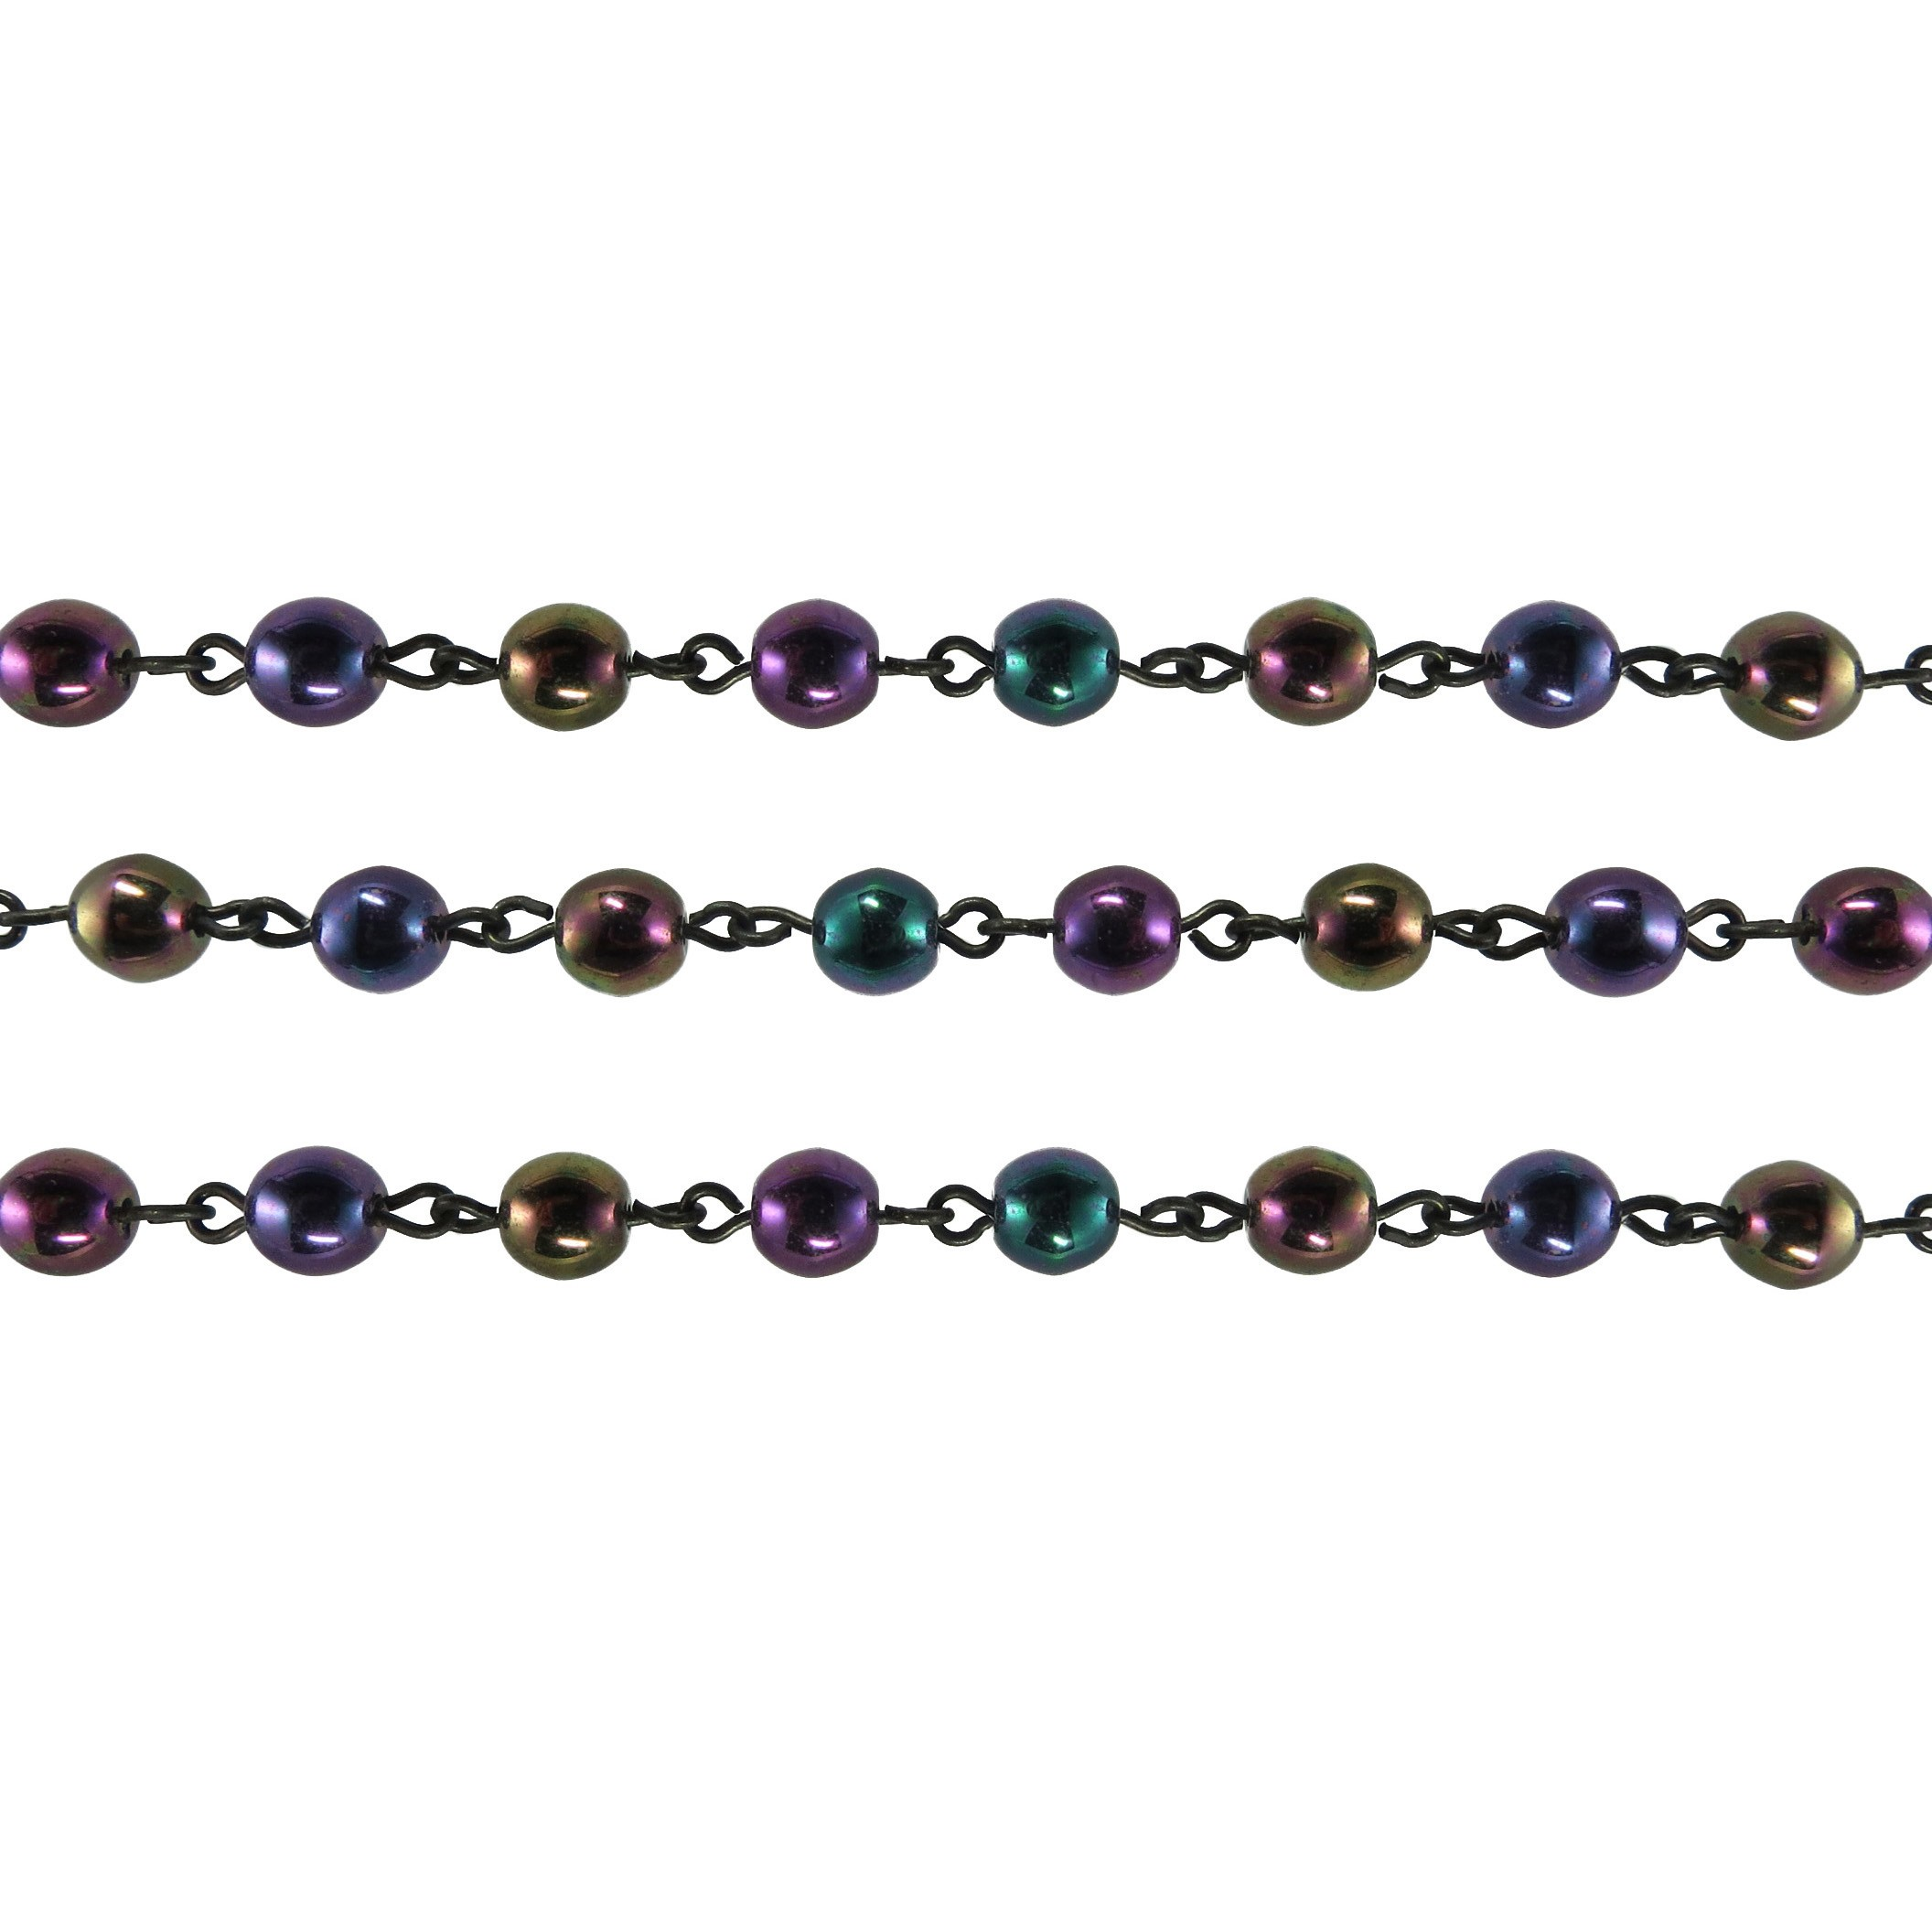 Czech Linked Rosary Chain, 6mm Purple Iris Druk Bead, Black Linked Chain, (Sold by the Meter)